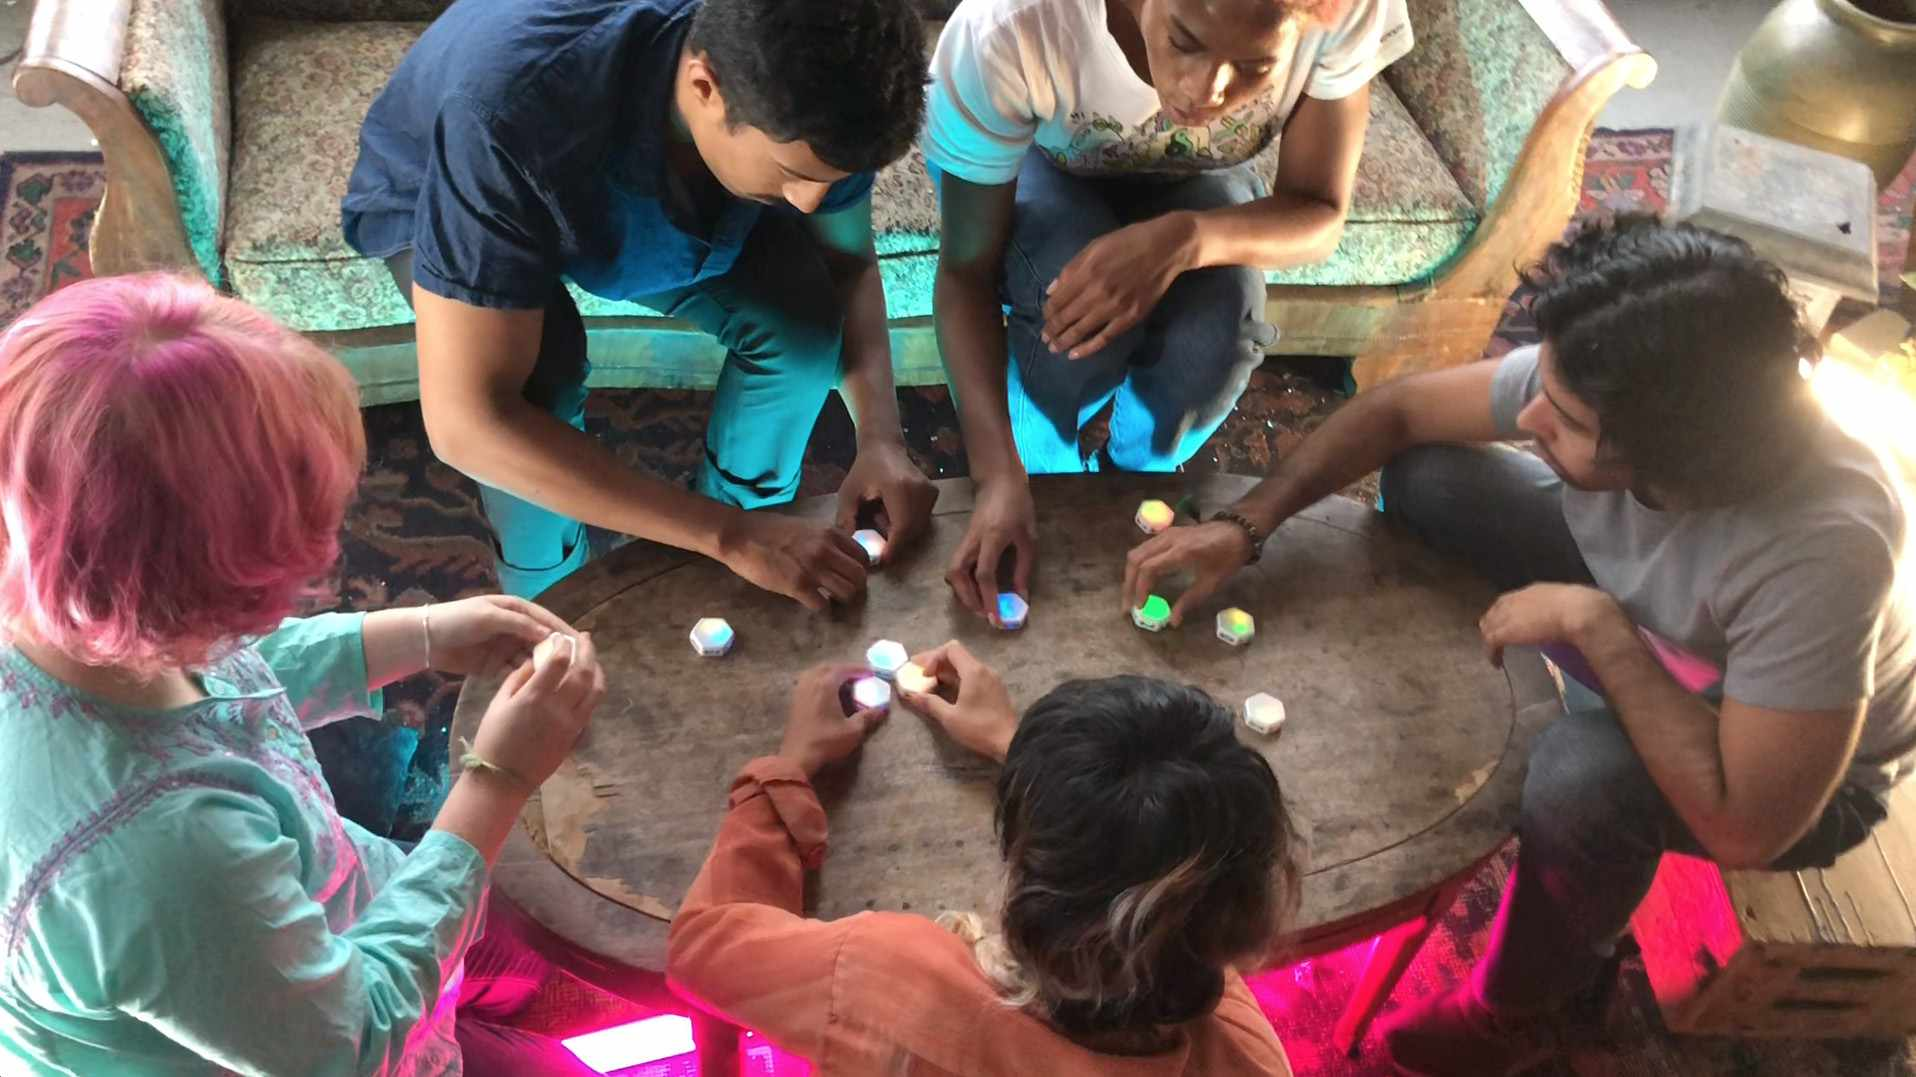 A group of people play the Blinks game.